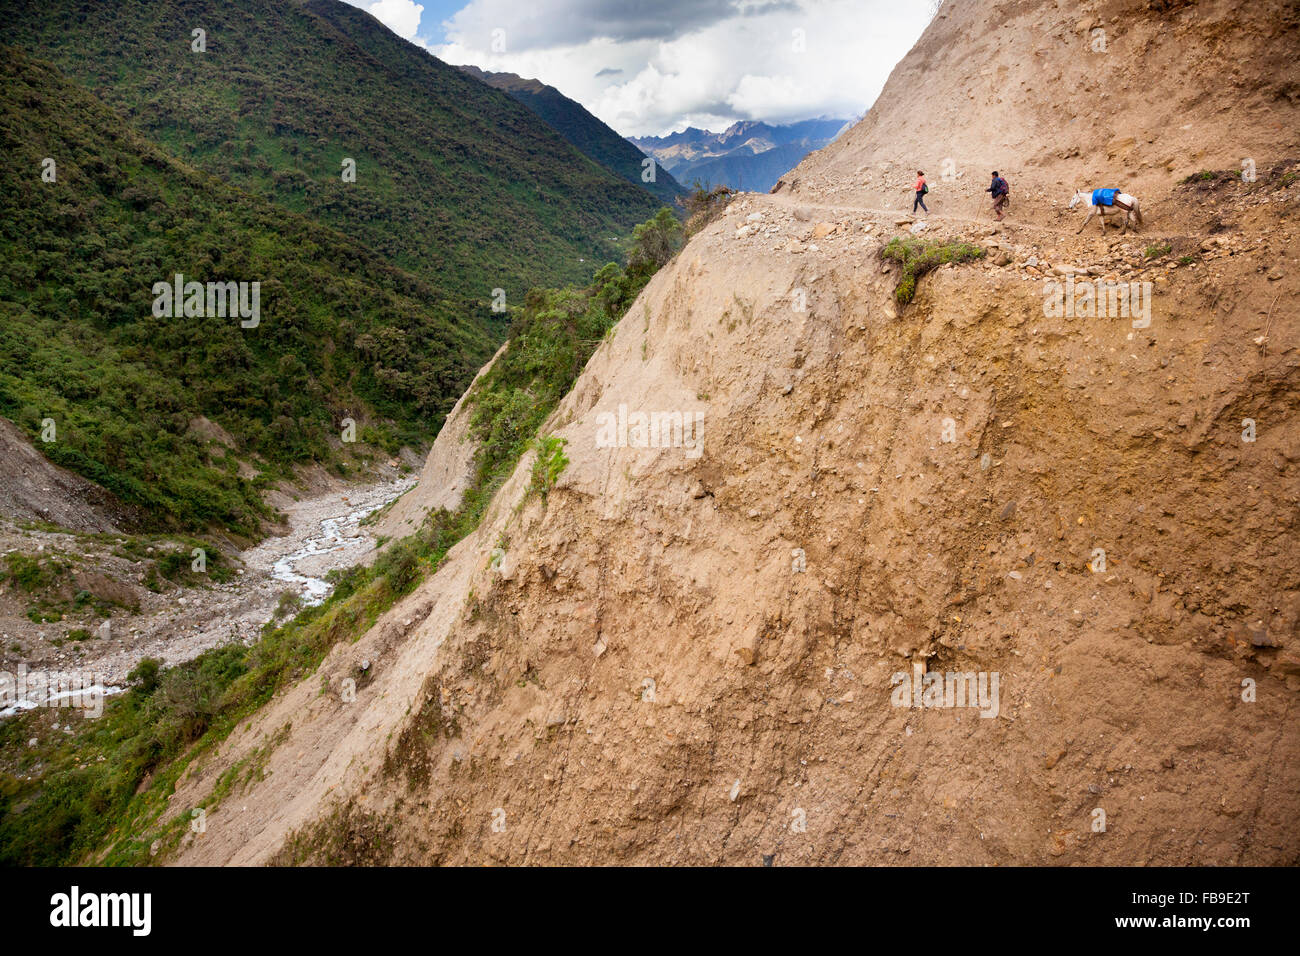 Arriero (muleskinner), pack mules and trek guide on the Choquequirao (Cradle of Gold) Inca Trail, Peru. - Stock Image